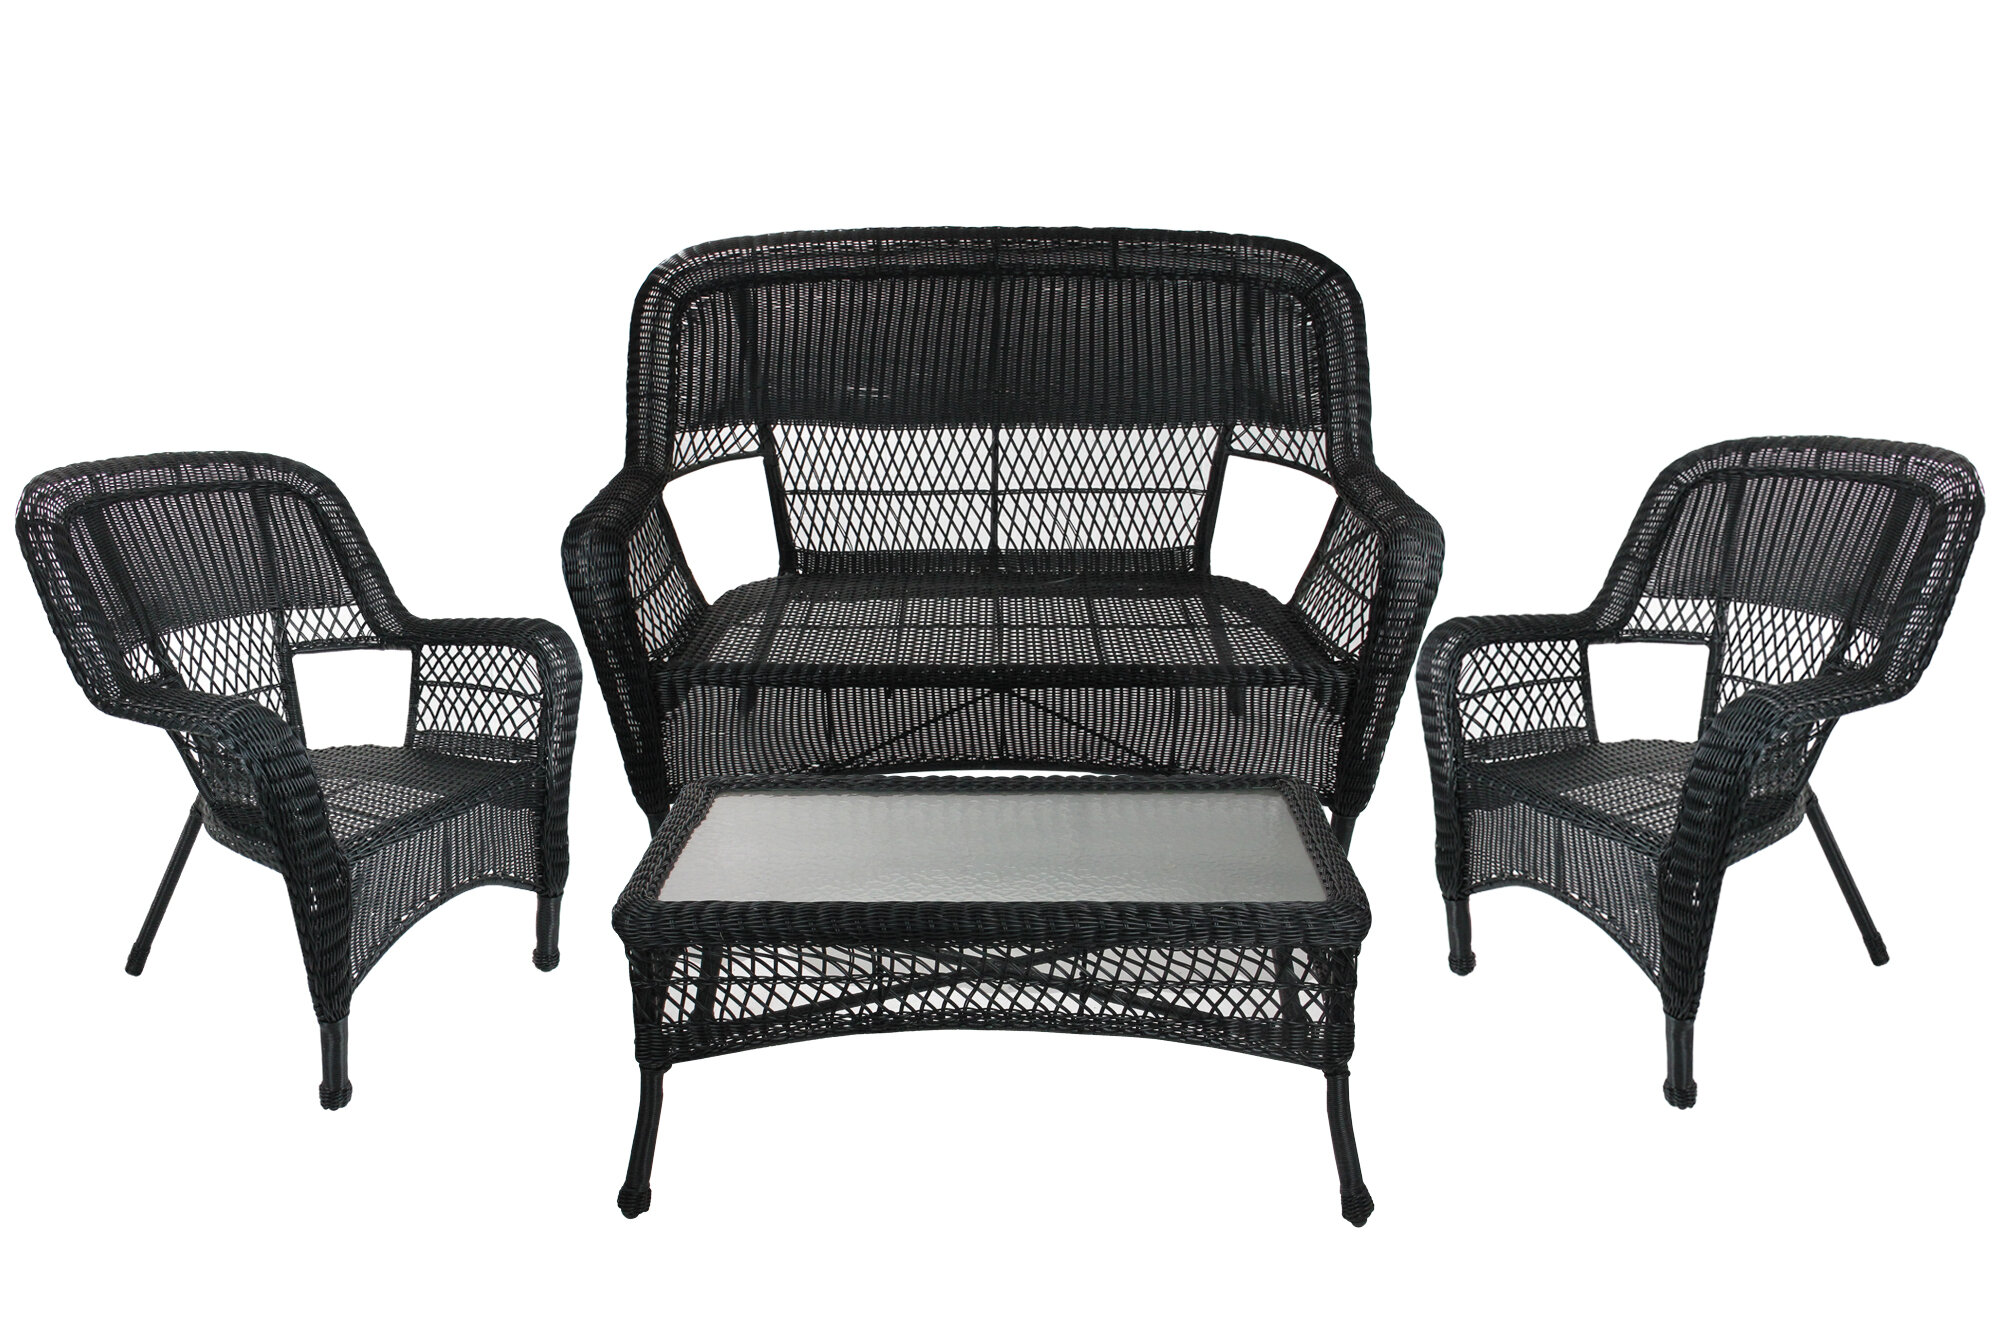 Northlight 4-Piece Black Steel Resin Outdoor Patio Furniture Set